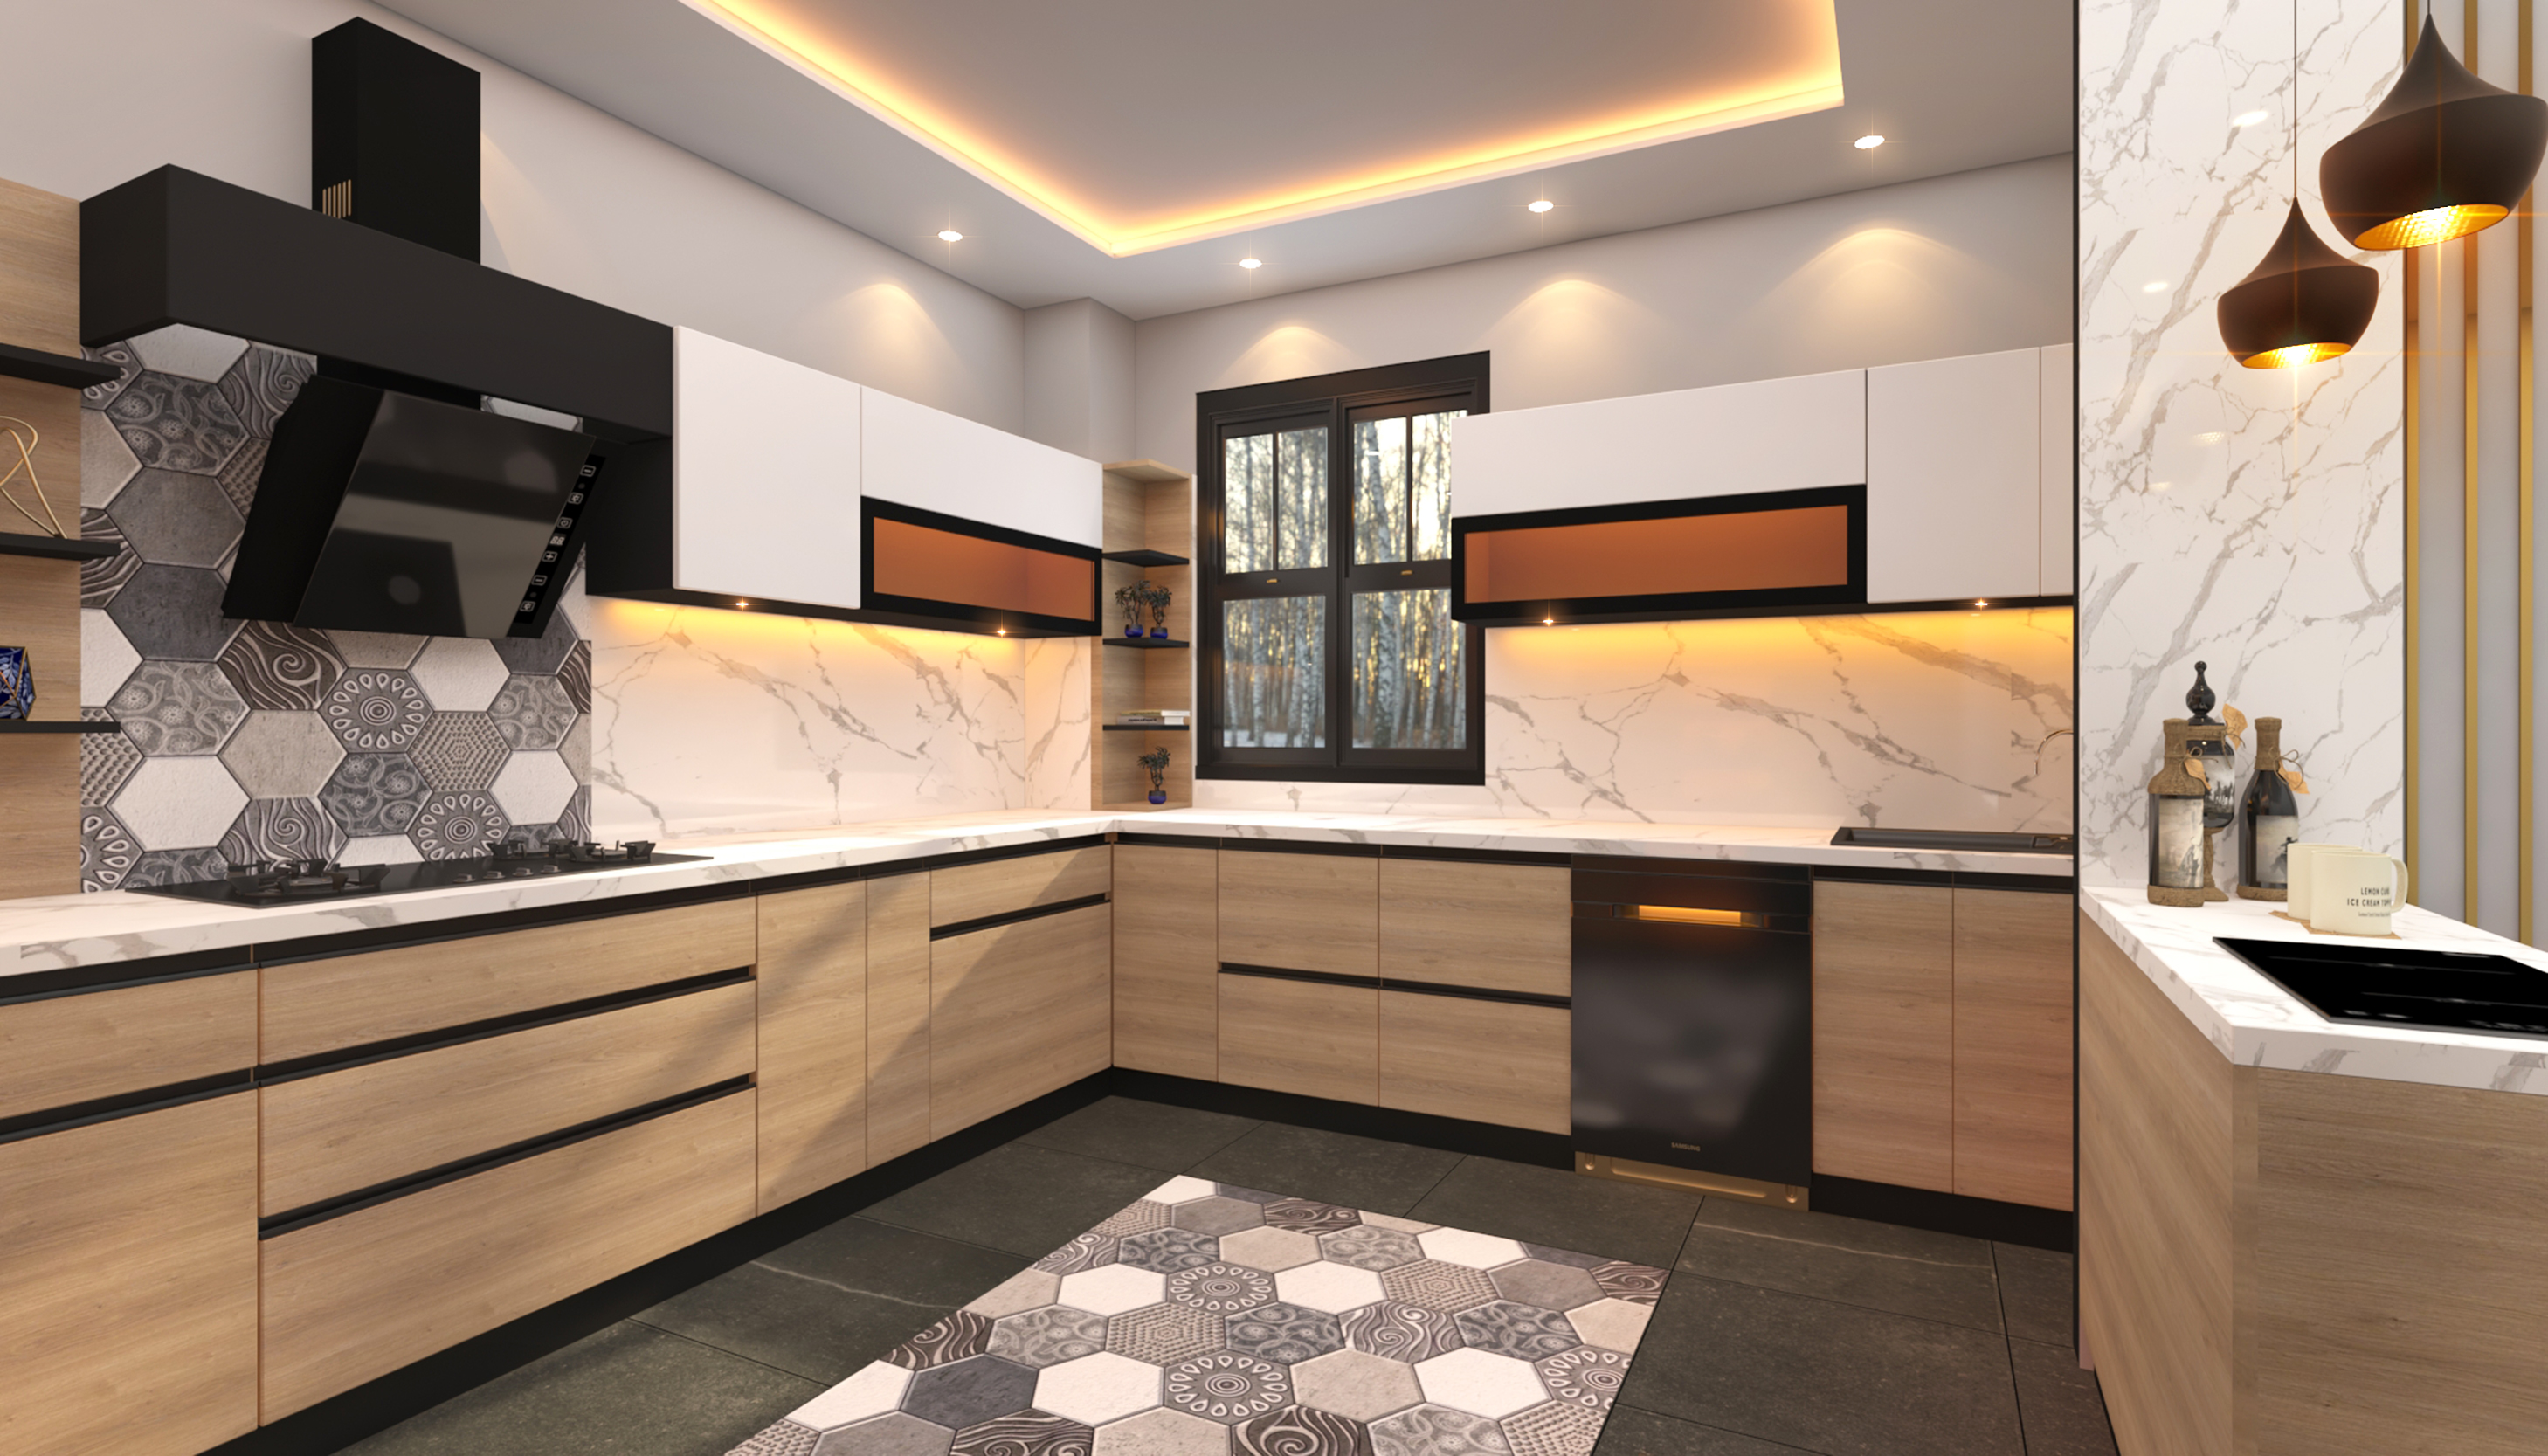 A 5 Step Guide To Planning Your Kitchen